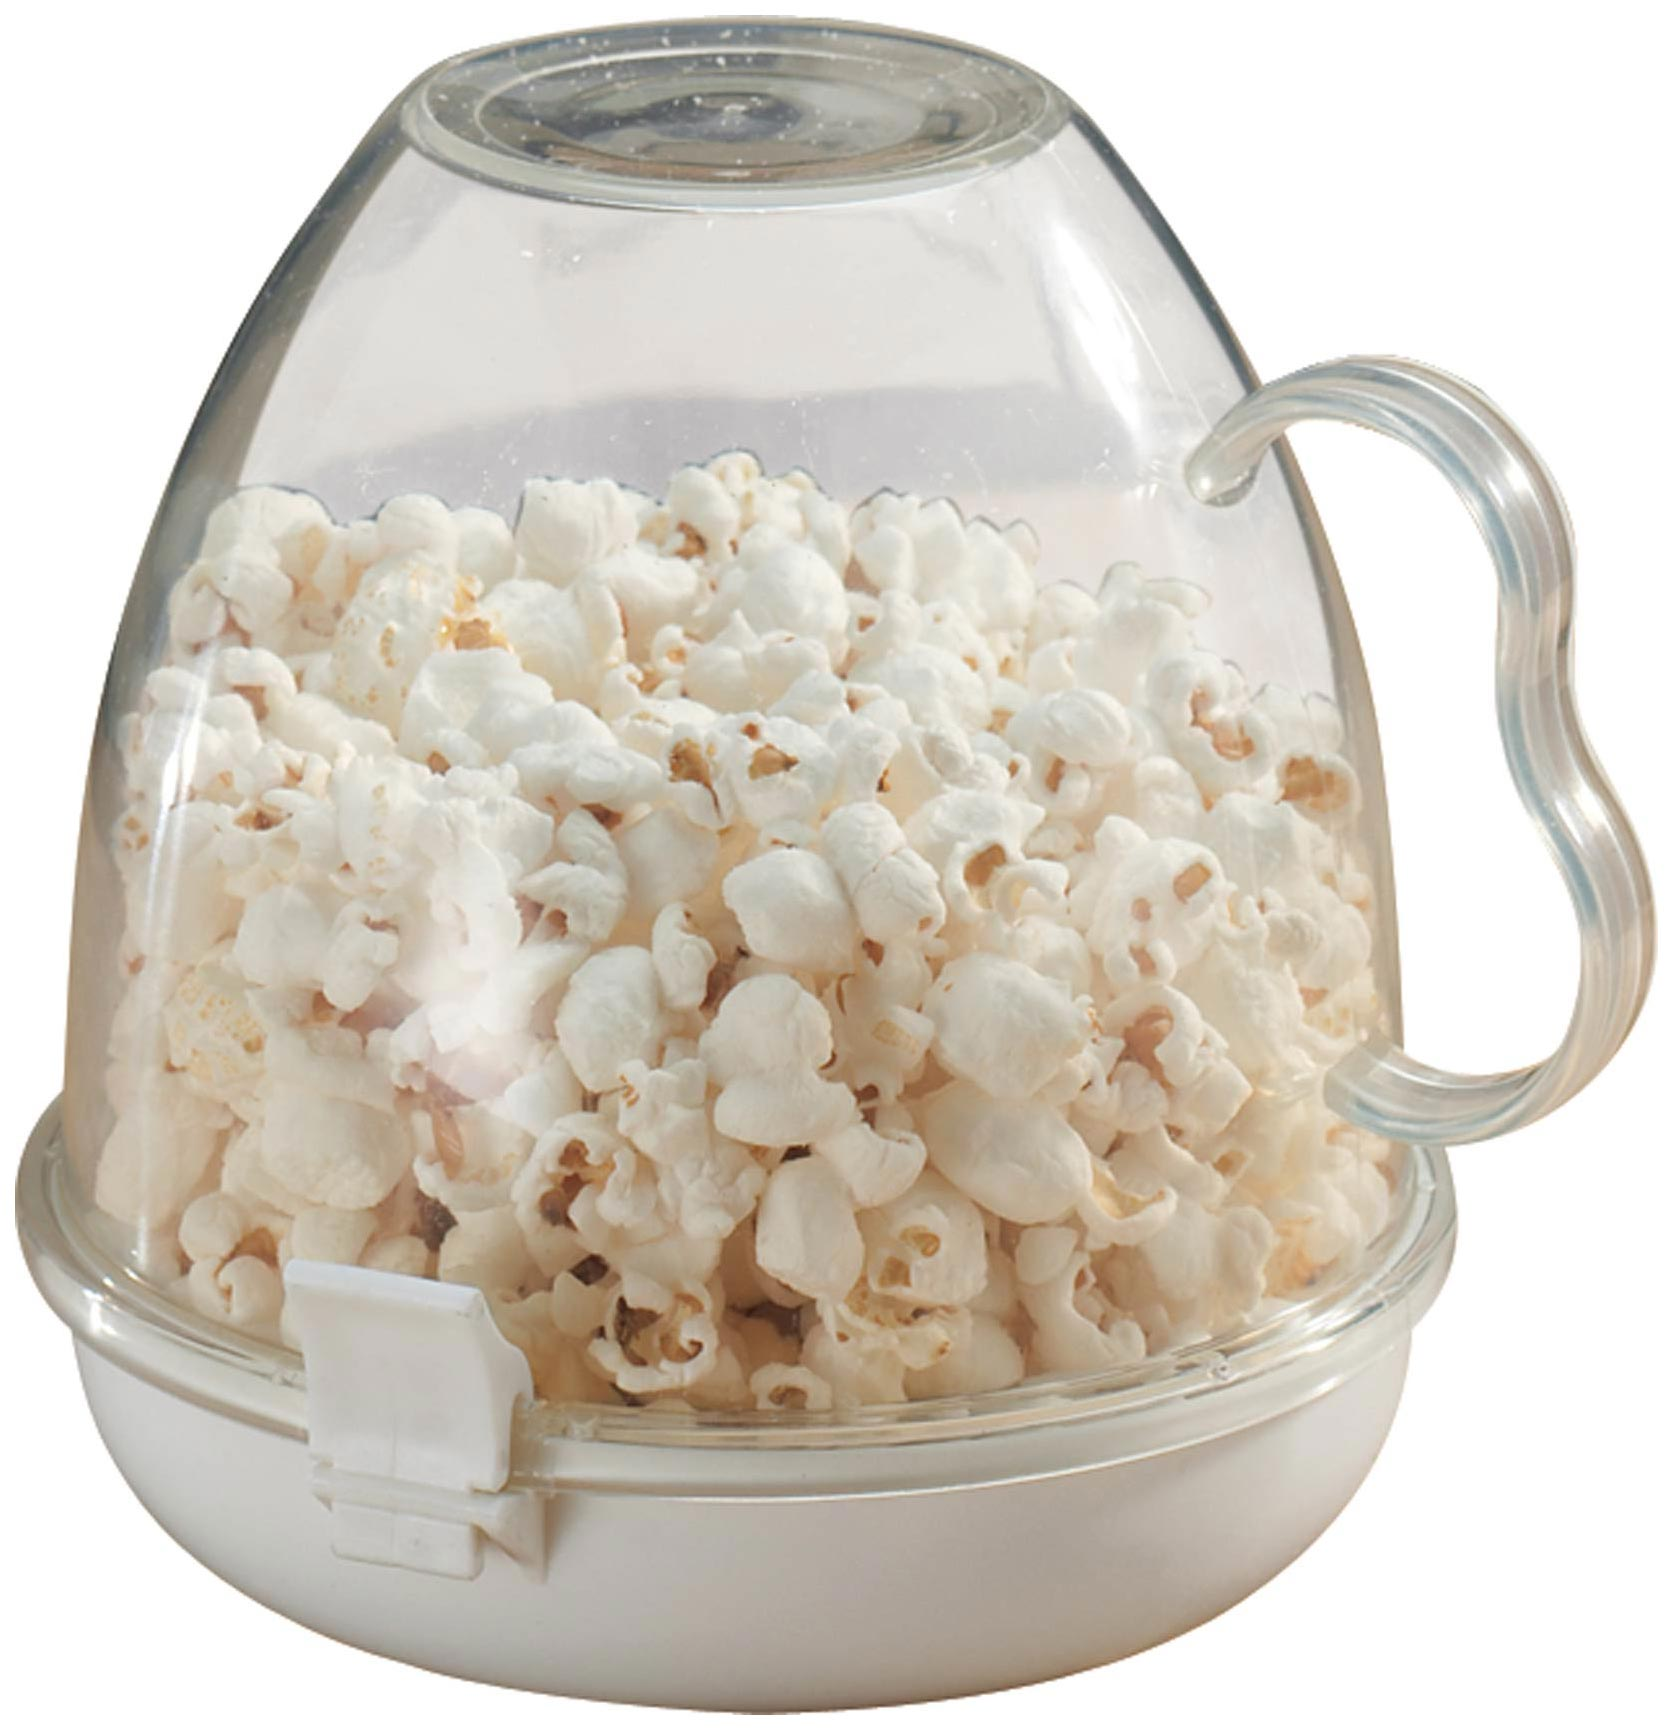 Microwave Popcorn Maker, Clear Microwave popcorn popper makes perfectly portioned popcorn with less mess. Simply add kernels with the desired oil, butter or flavoring to bottom tray of microwave popcorn maker. Snap on the clear bowl and microwave. Flip unit, remove lid and eat right from the handled bowl. Microwave popcorn bowl is dishwasher safe. 5 1/2 long x 7 wide x 6 1/2 high.